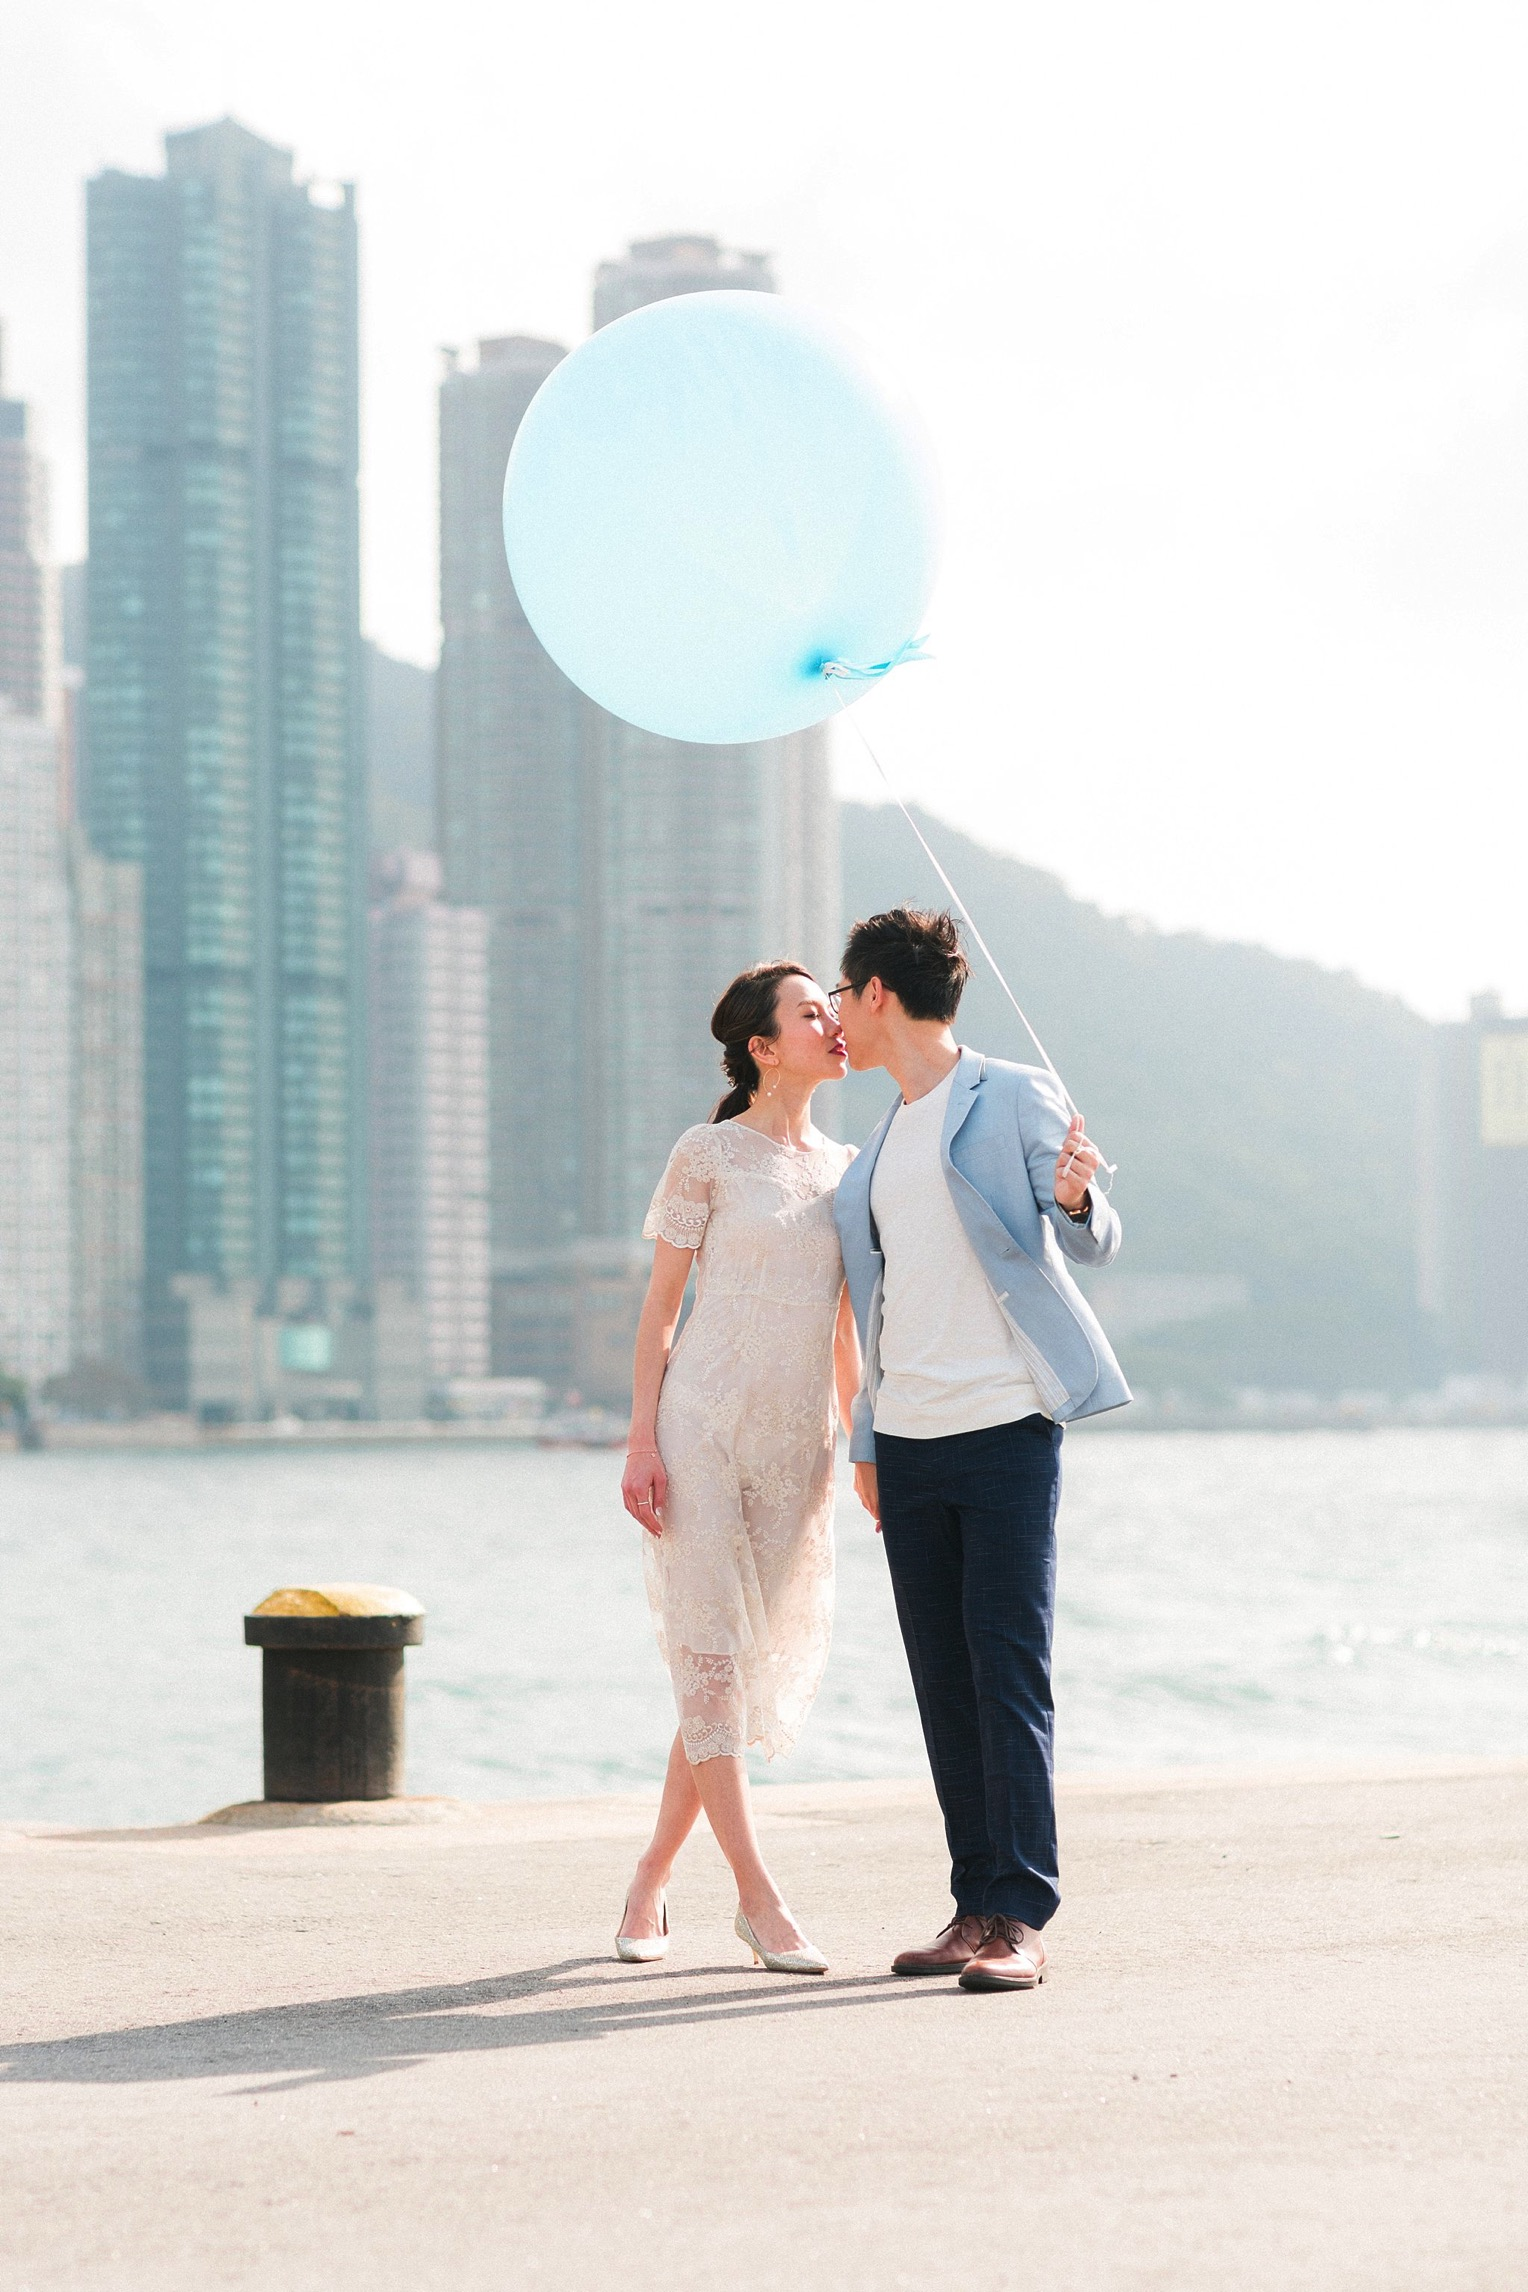 French Grey Photography Hong Kong Prewedding120